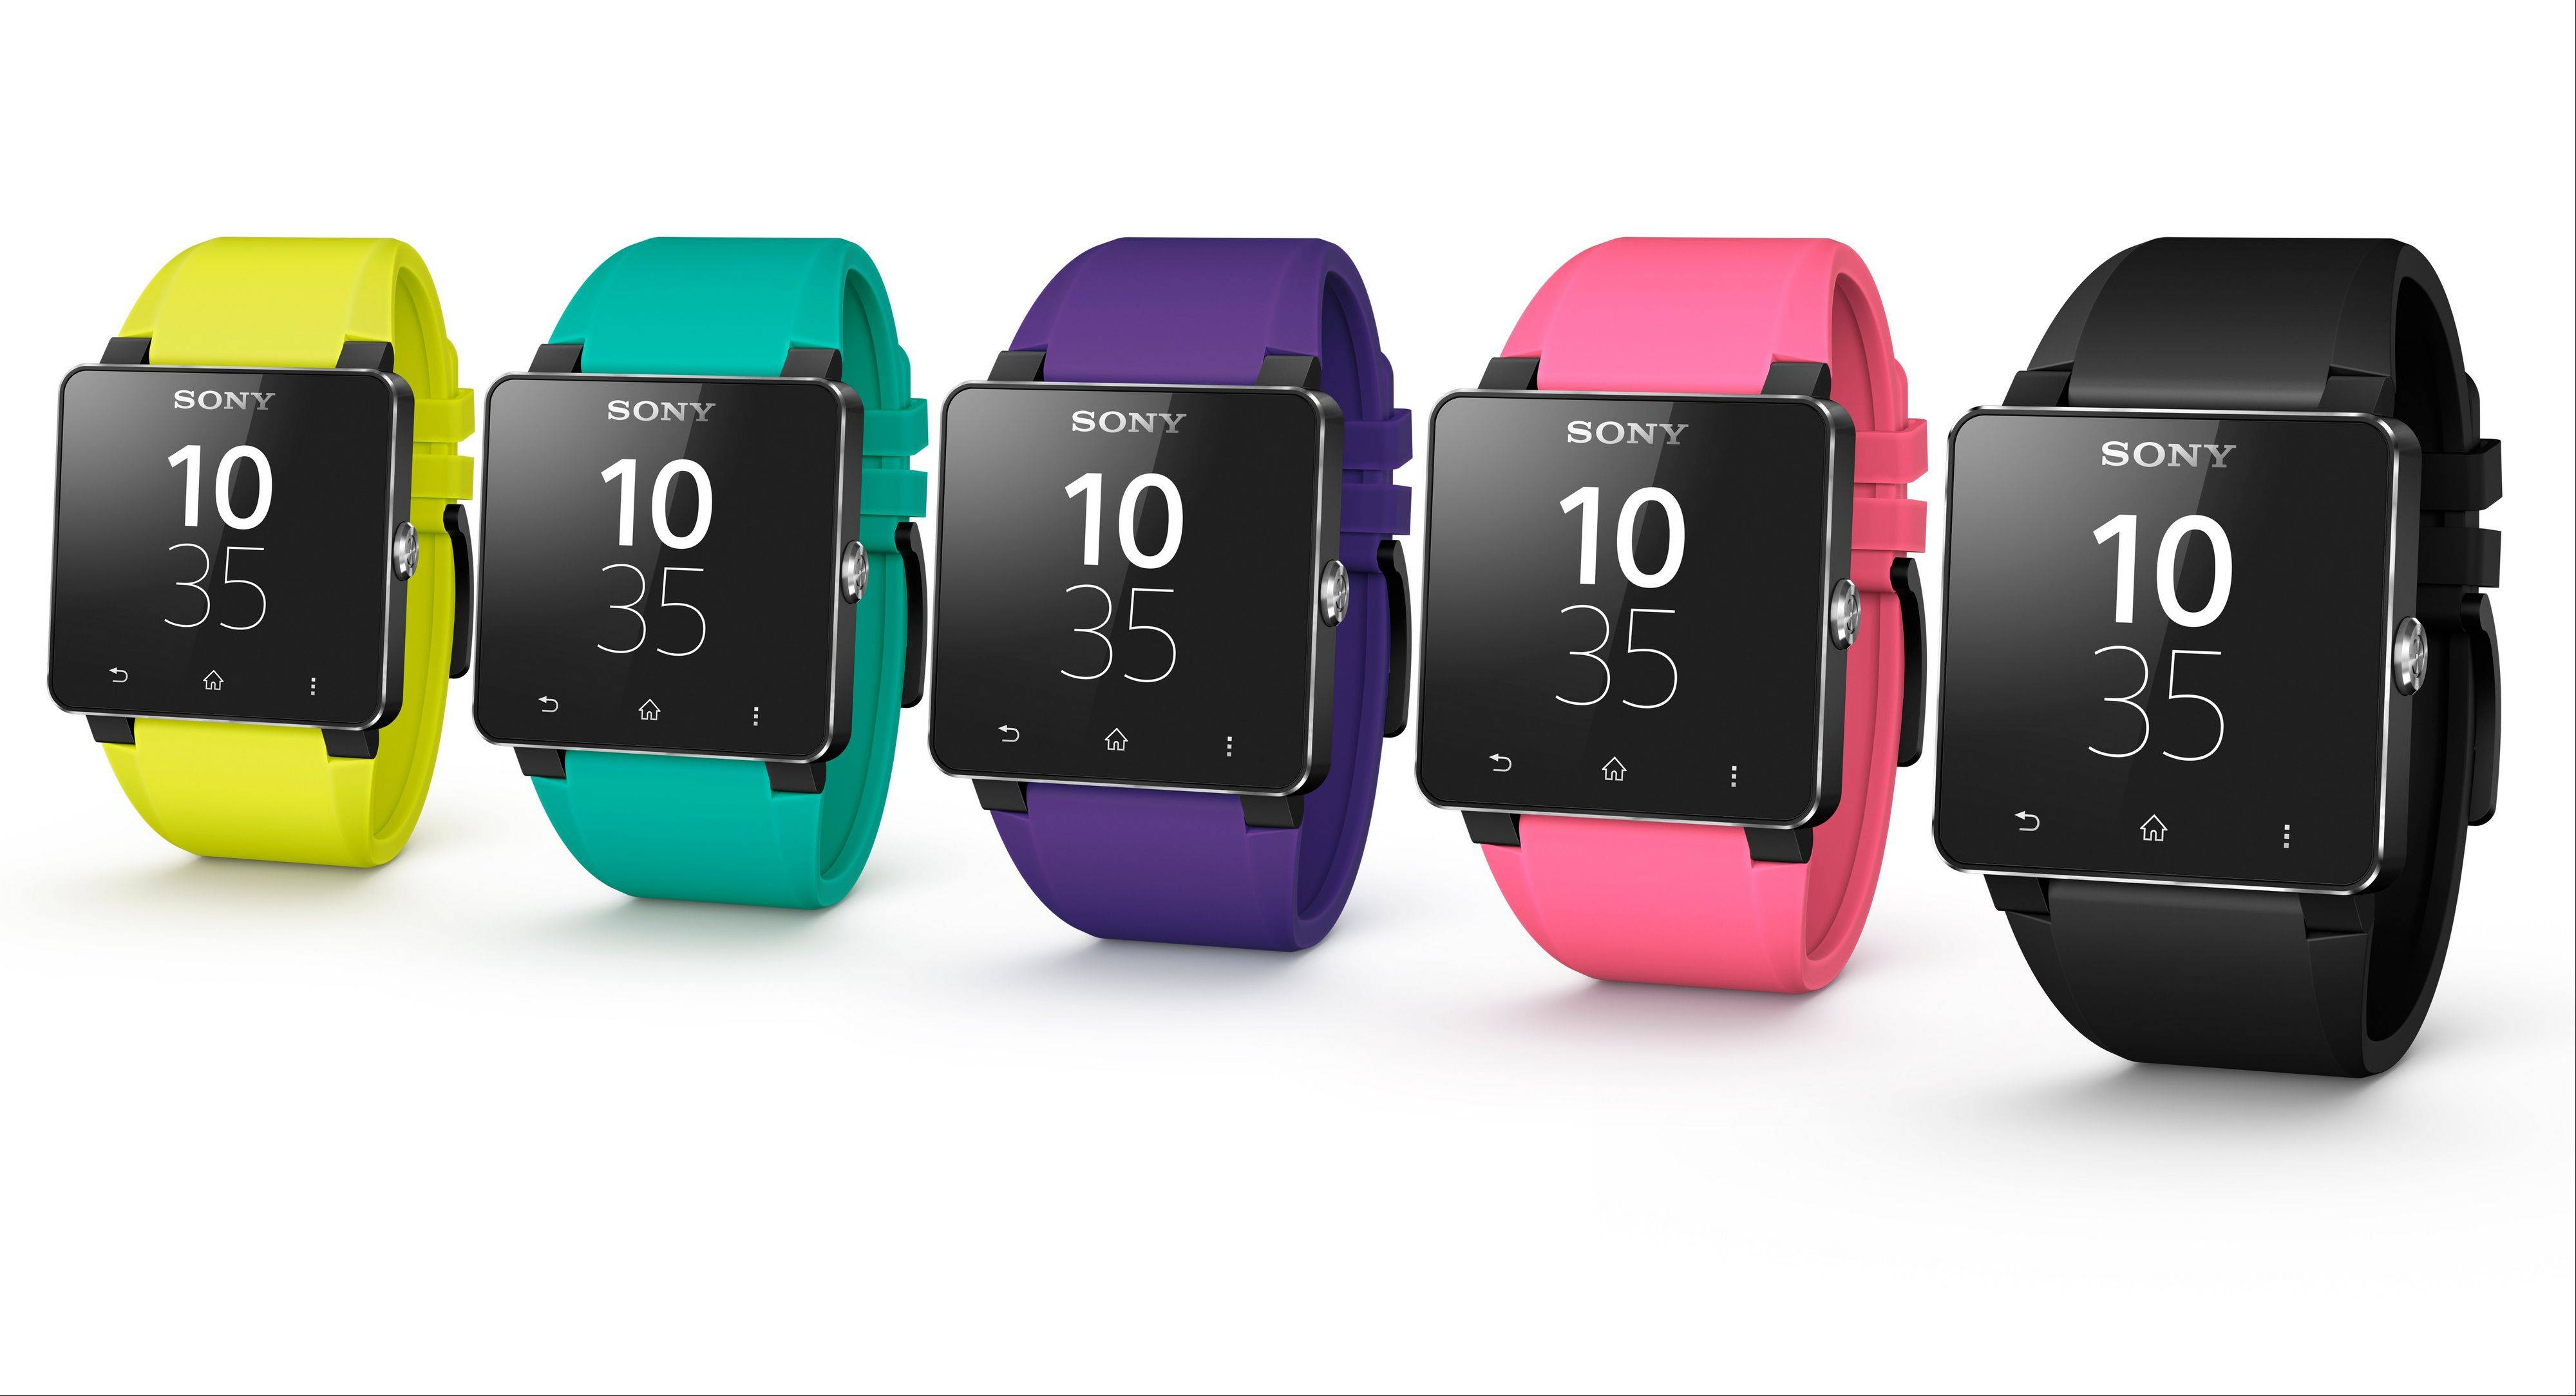 Sony�s SmartWatch 2 comes in a variety of colors. Sony says its new computerized wristwatch will sell for $200 in the U.S. and will work with a variety of Android phones.